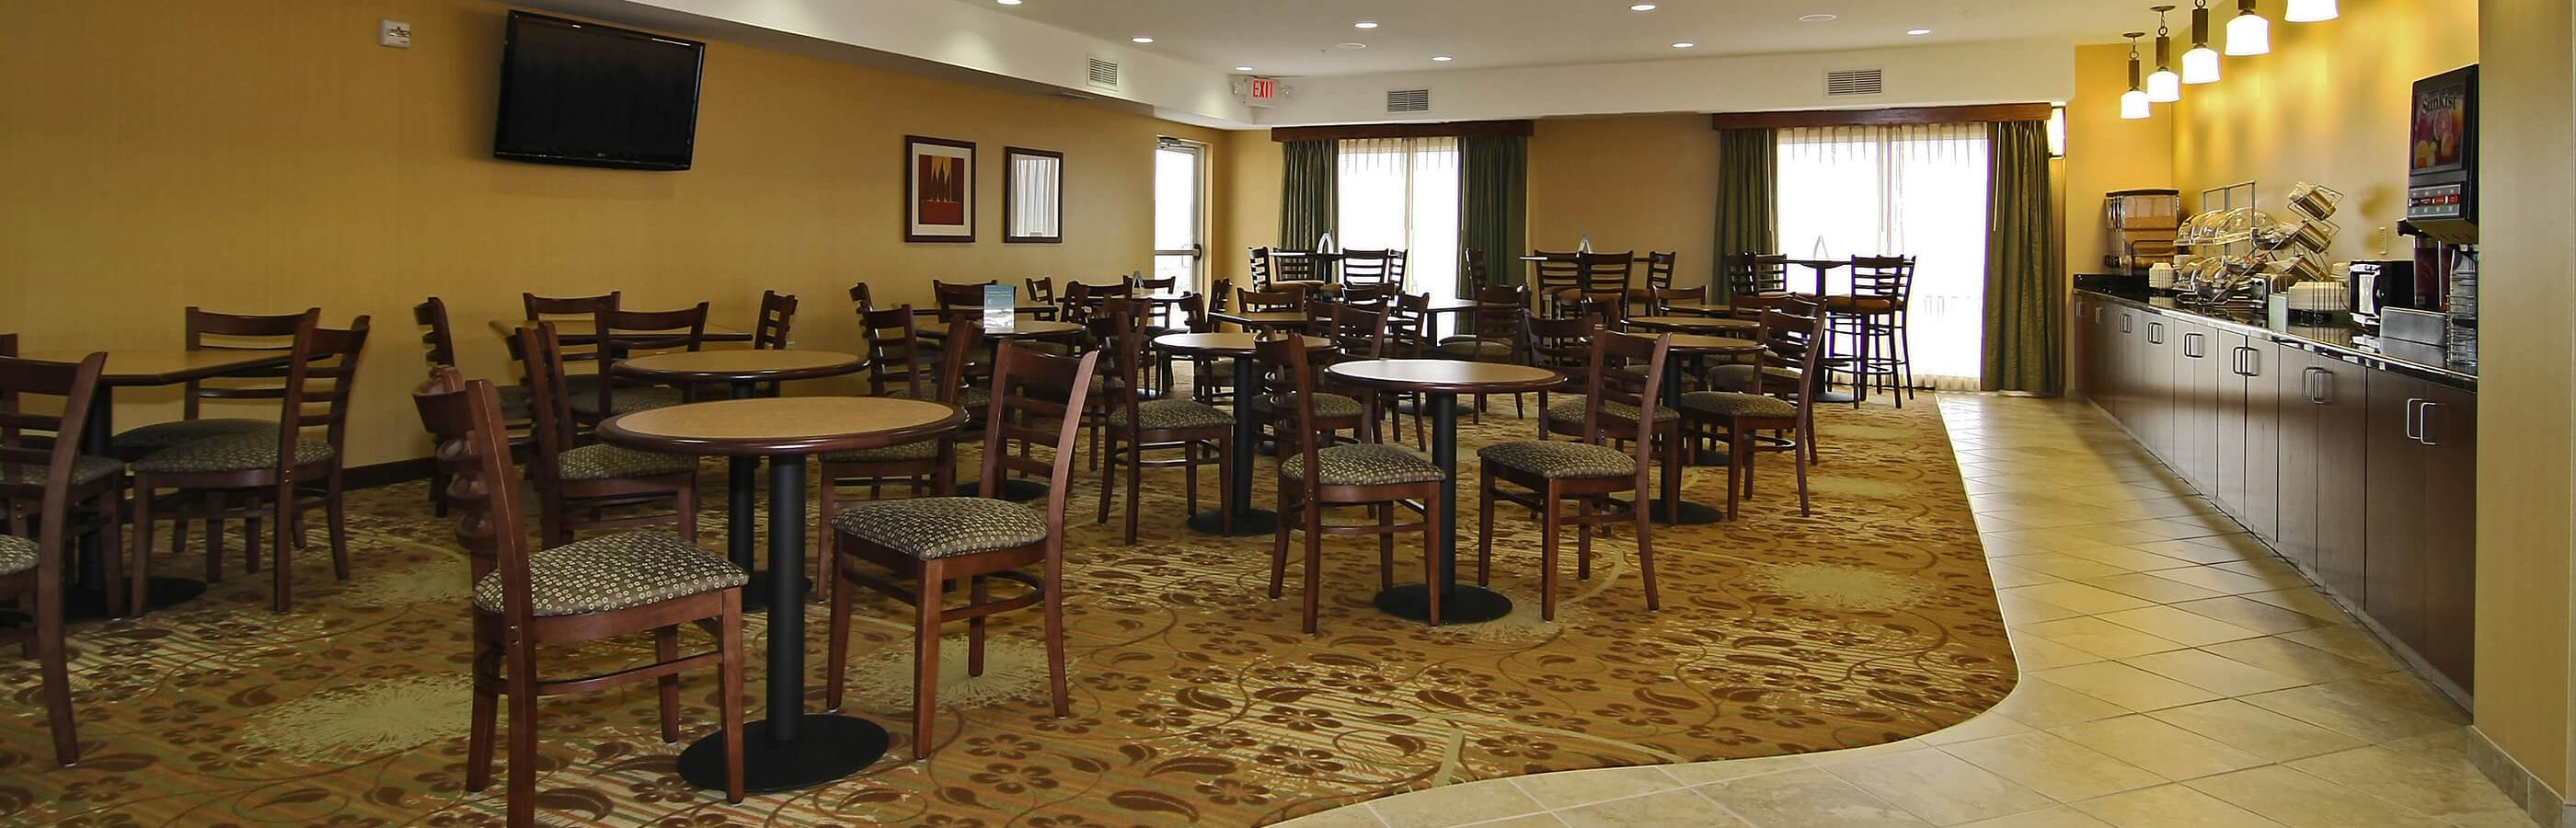 Comfort Suites & Convention Center in Rapid City South Dakota